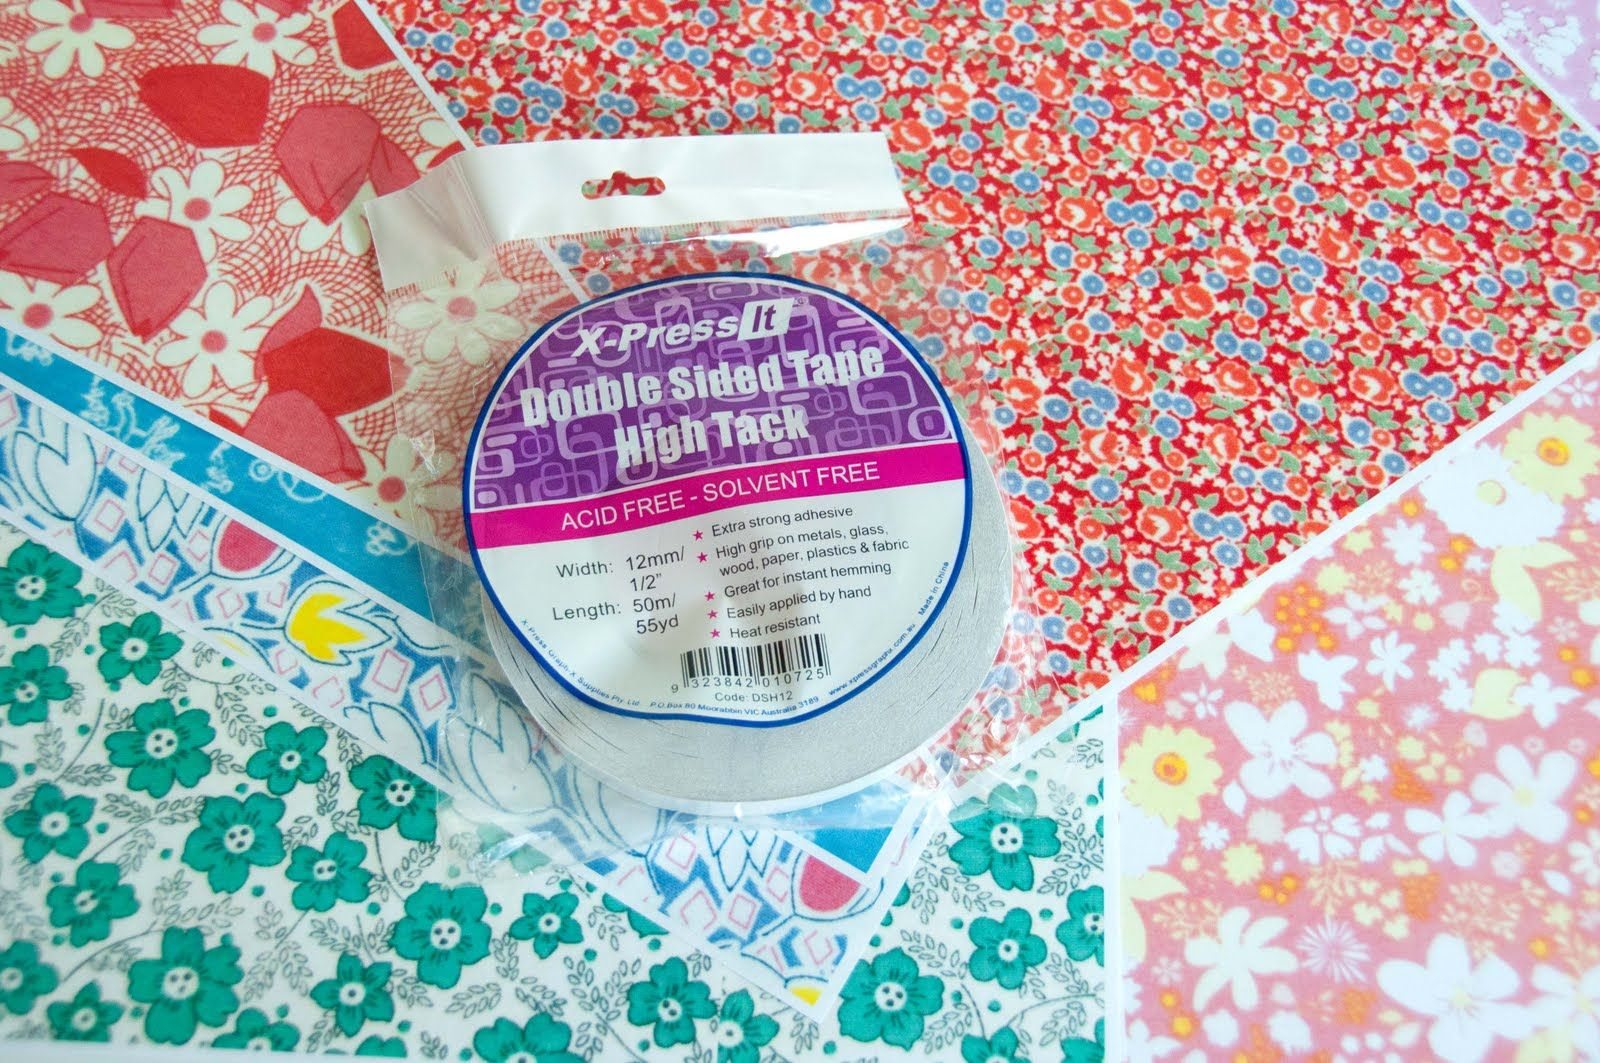 Aesthetic nest craft diy printed paper tape washi tape tutorial aesthetic nest craft diy printed paper tape washi tape tutorial how bout using removable double sided tape like wall poster tape for that easy to jeuxipadfo Choice Image